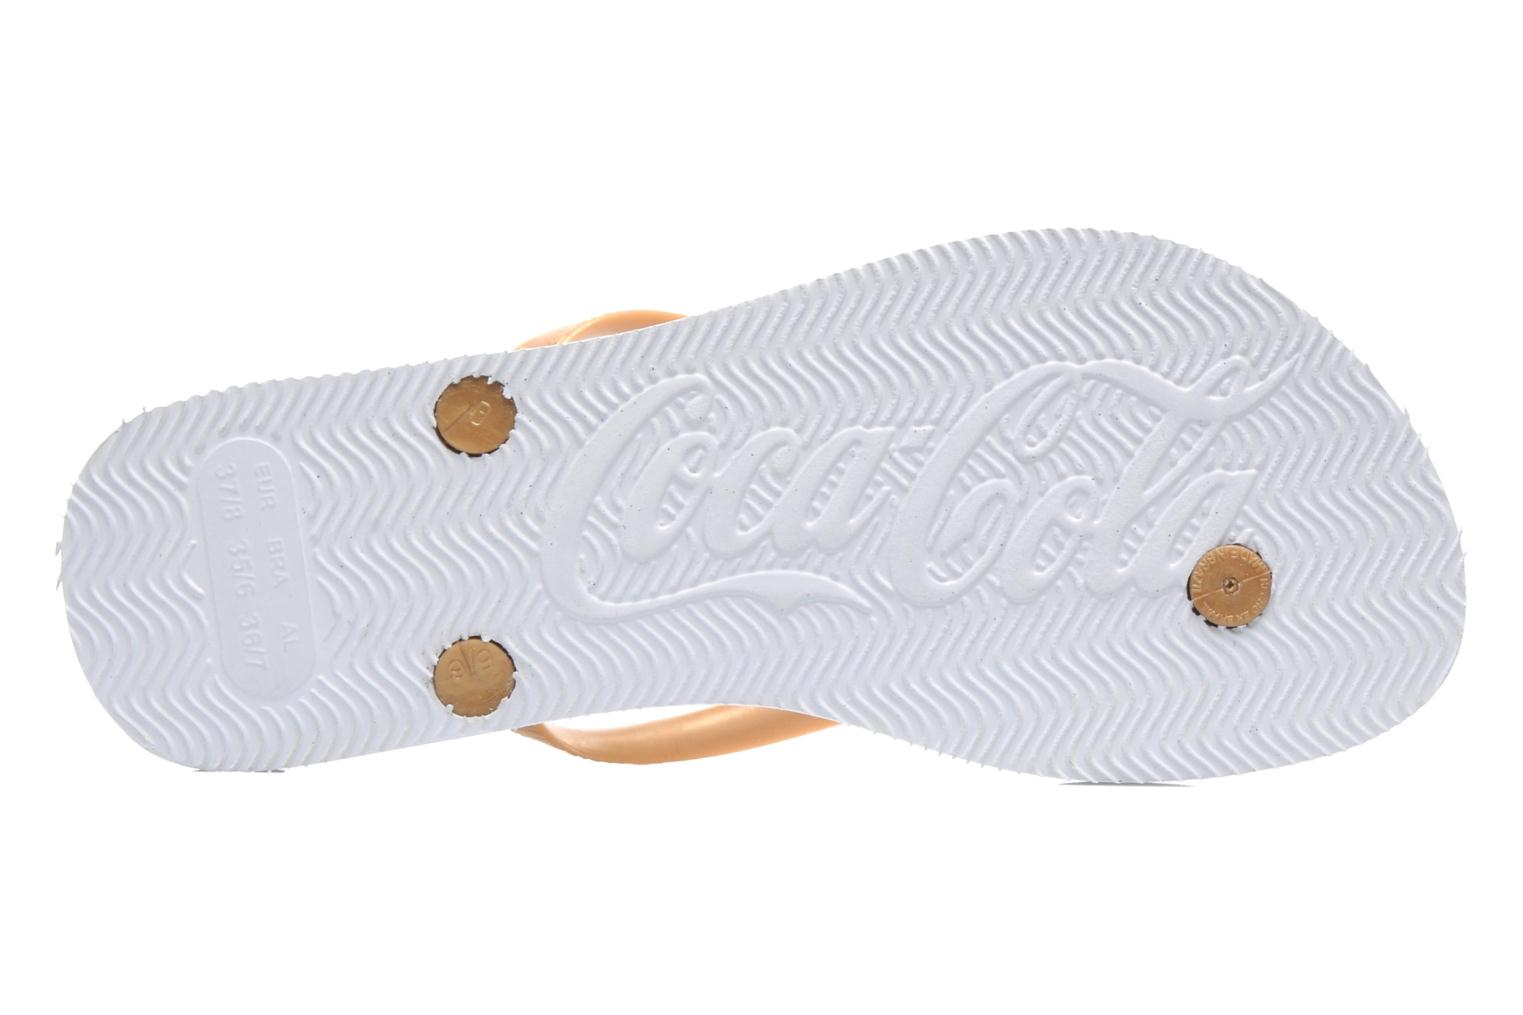 Flip flops Coca-cola shoes Coke Bright Bronze and Gold view from above